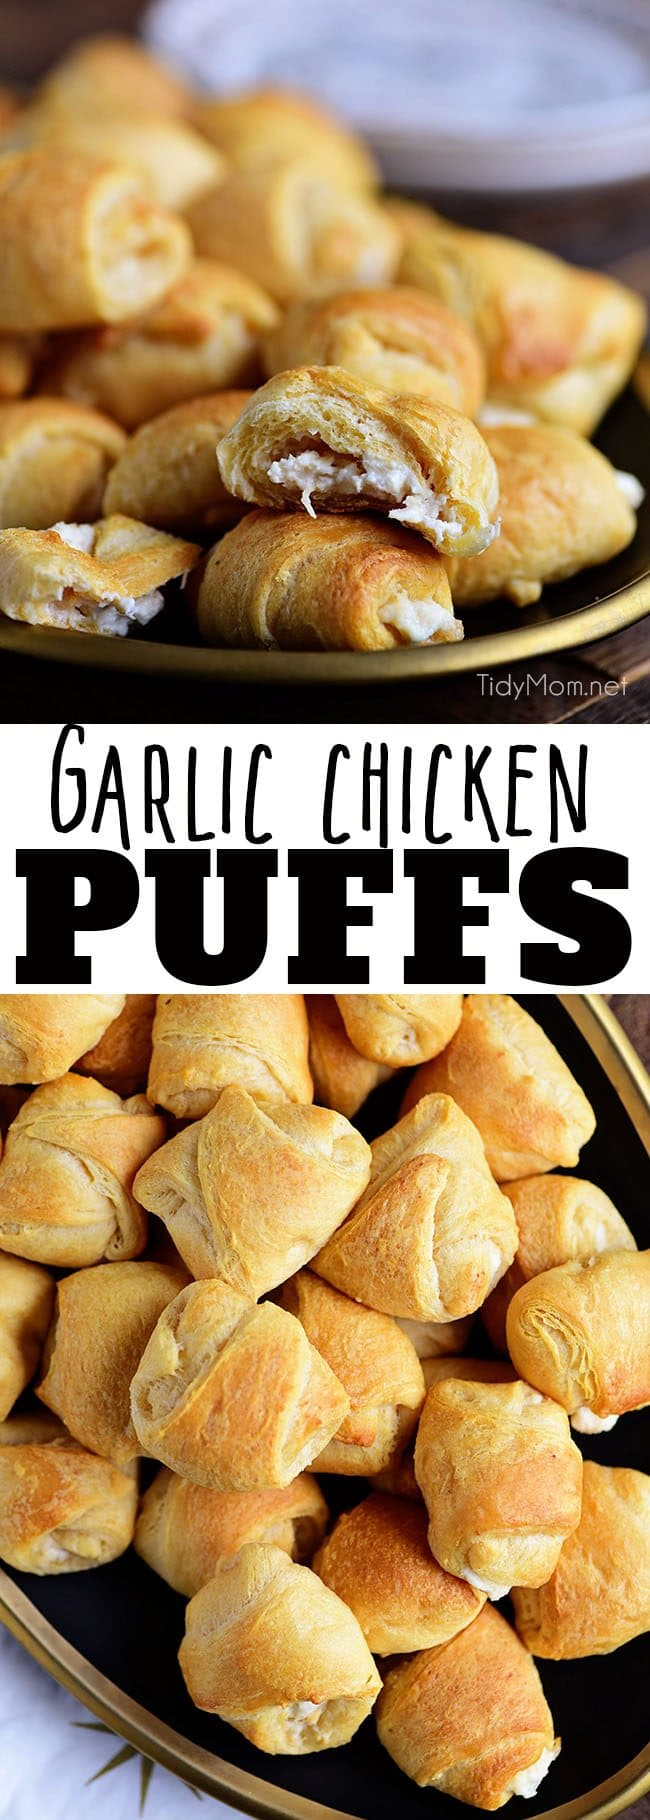 Garlic Chicken Puffs have a rich creamy garlic chicken mixture inside a croissant and baked to form a yummy appetizer. This finger food is a big crowd pleaser and great for gatherings! Print recipe at TidyMom.net